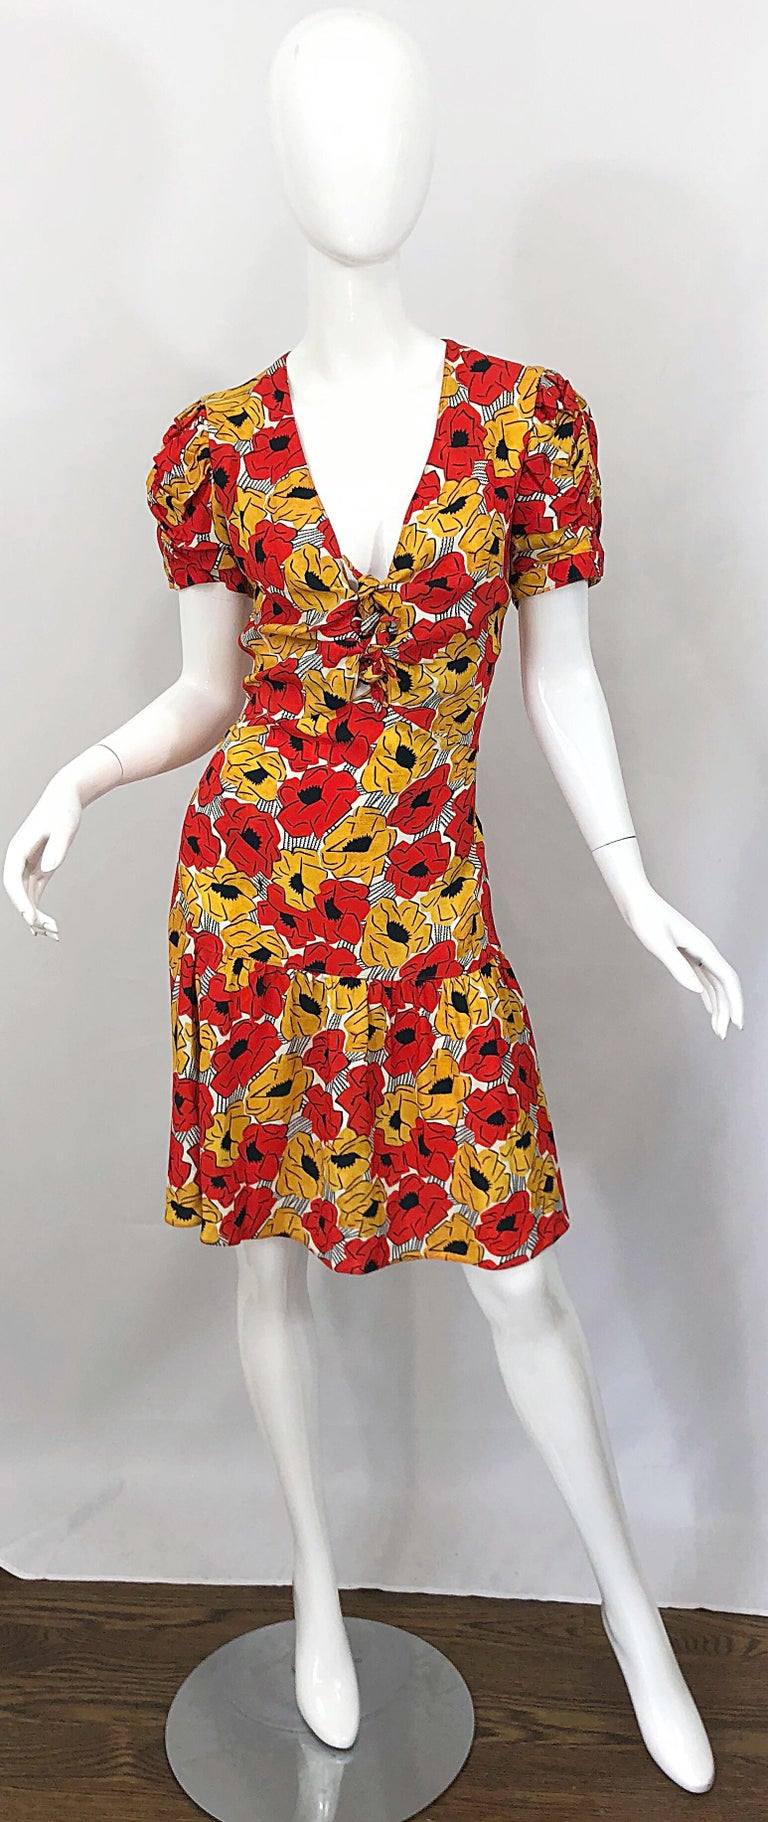 Yves Saint Laurent YSL Size 42 / 10 Yellow + Red Poppy Print Drop Waist Dress For Sale 10